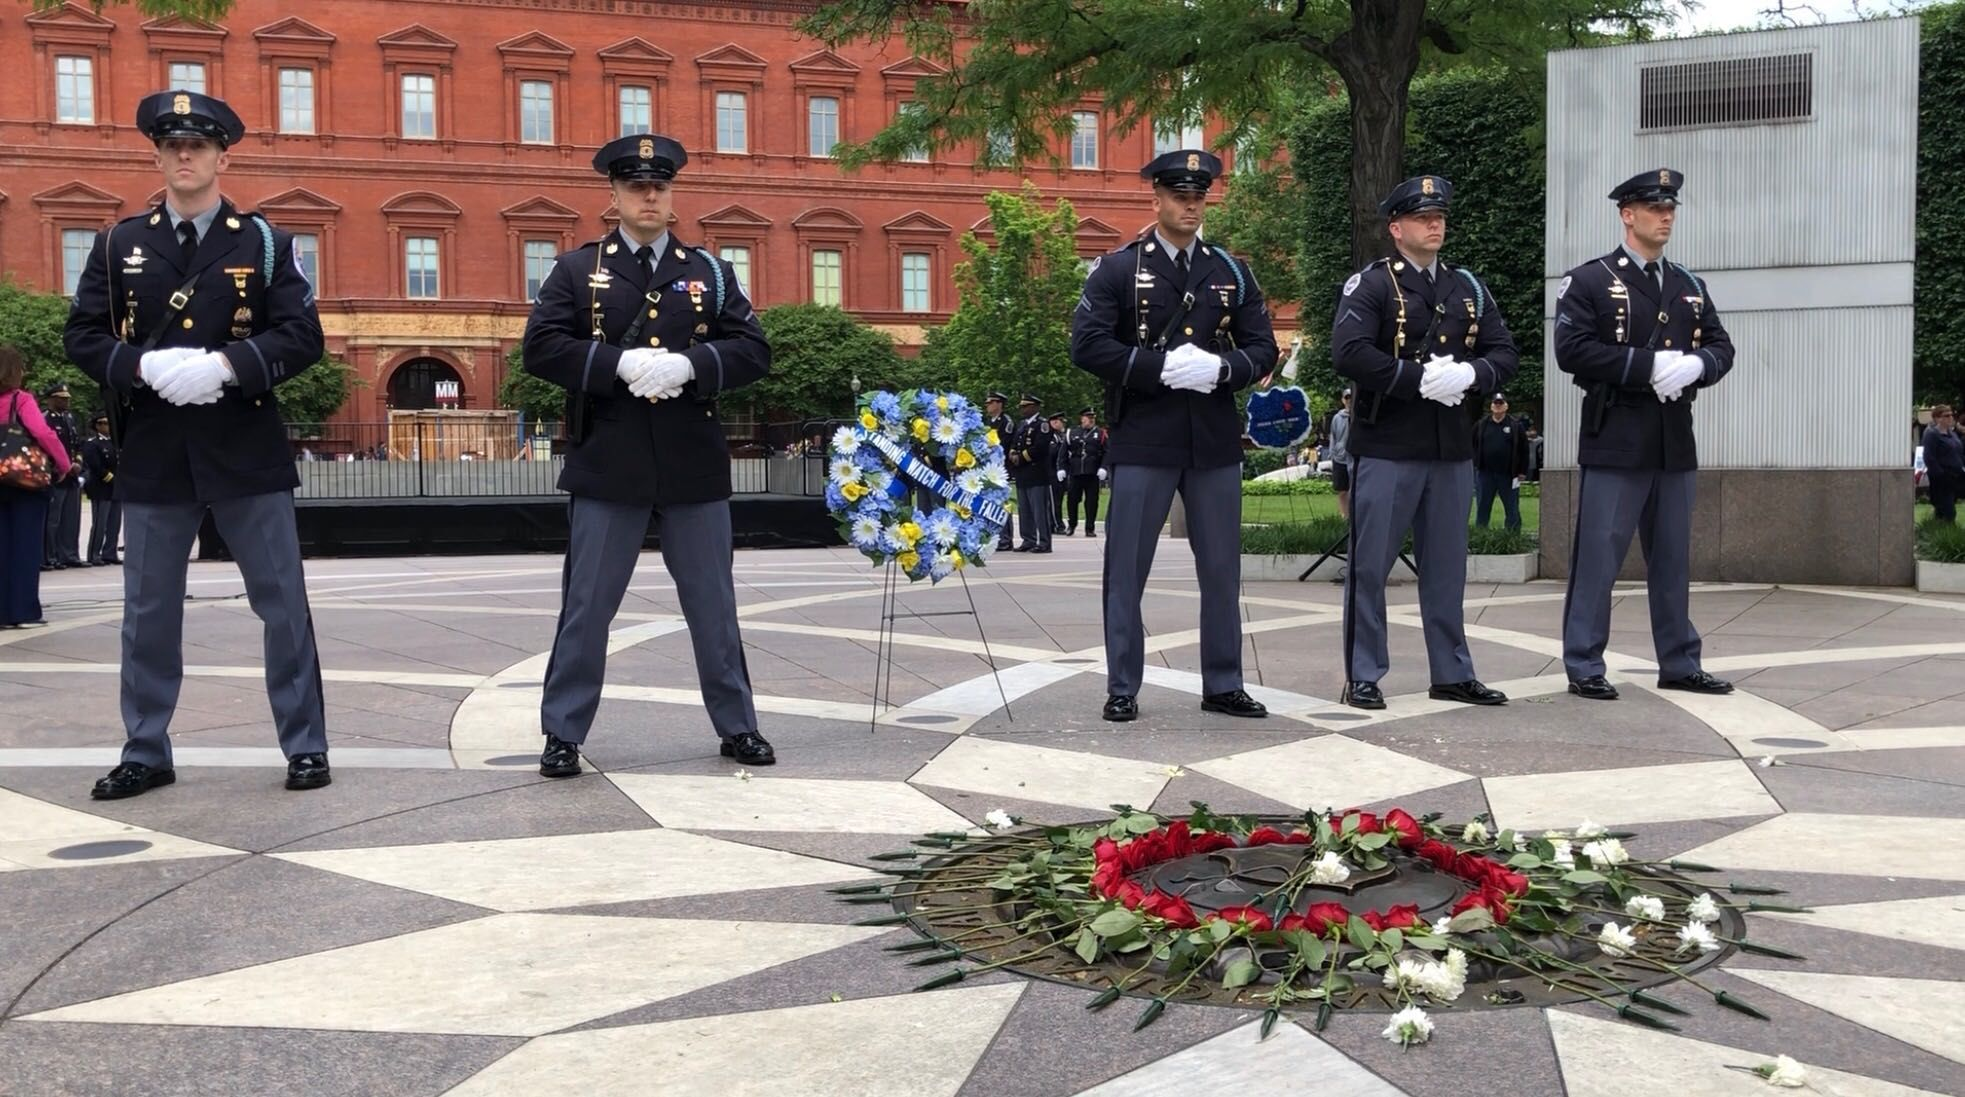 Officers Gather To Honor Fallen Officers In Vigil At Dc Memorial